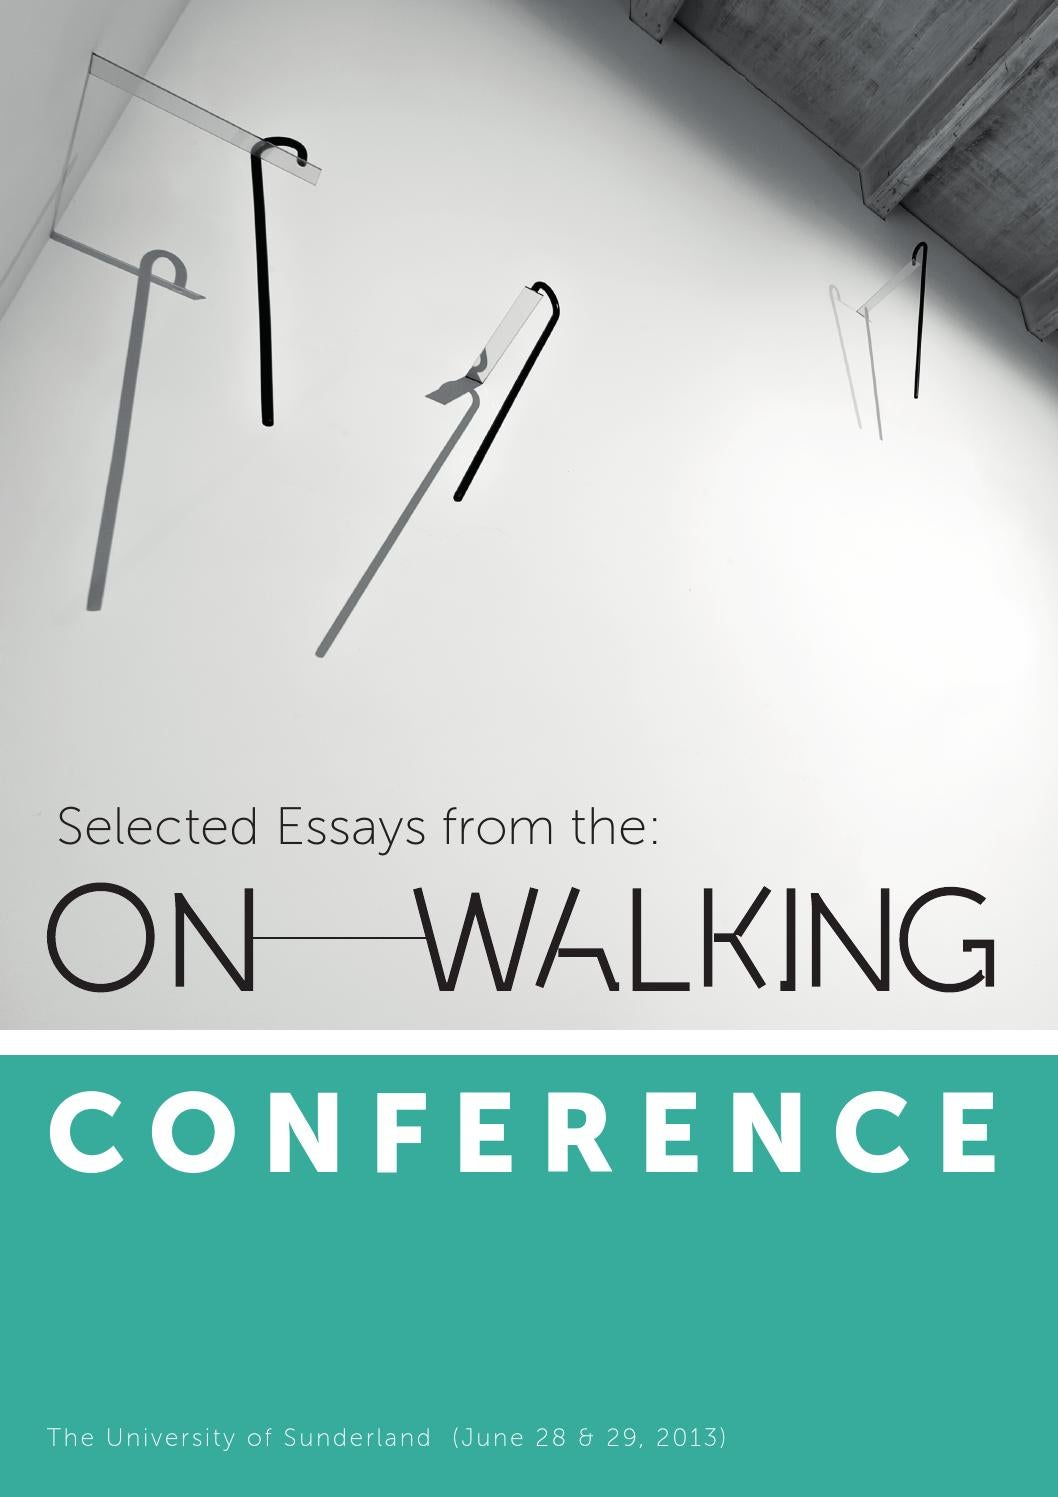 Walk On Conference By Stereographic Issuu